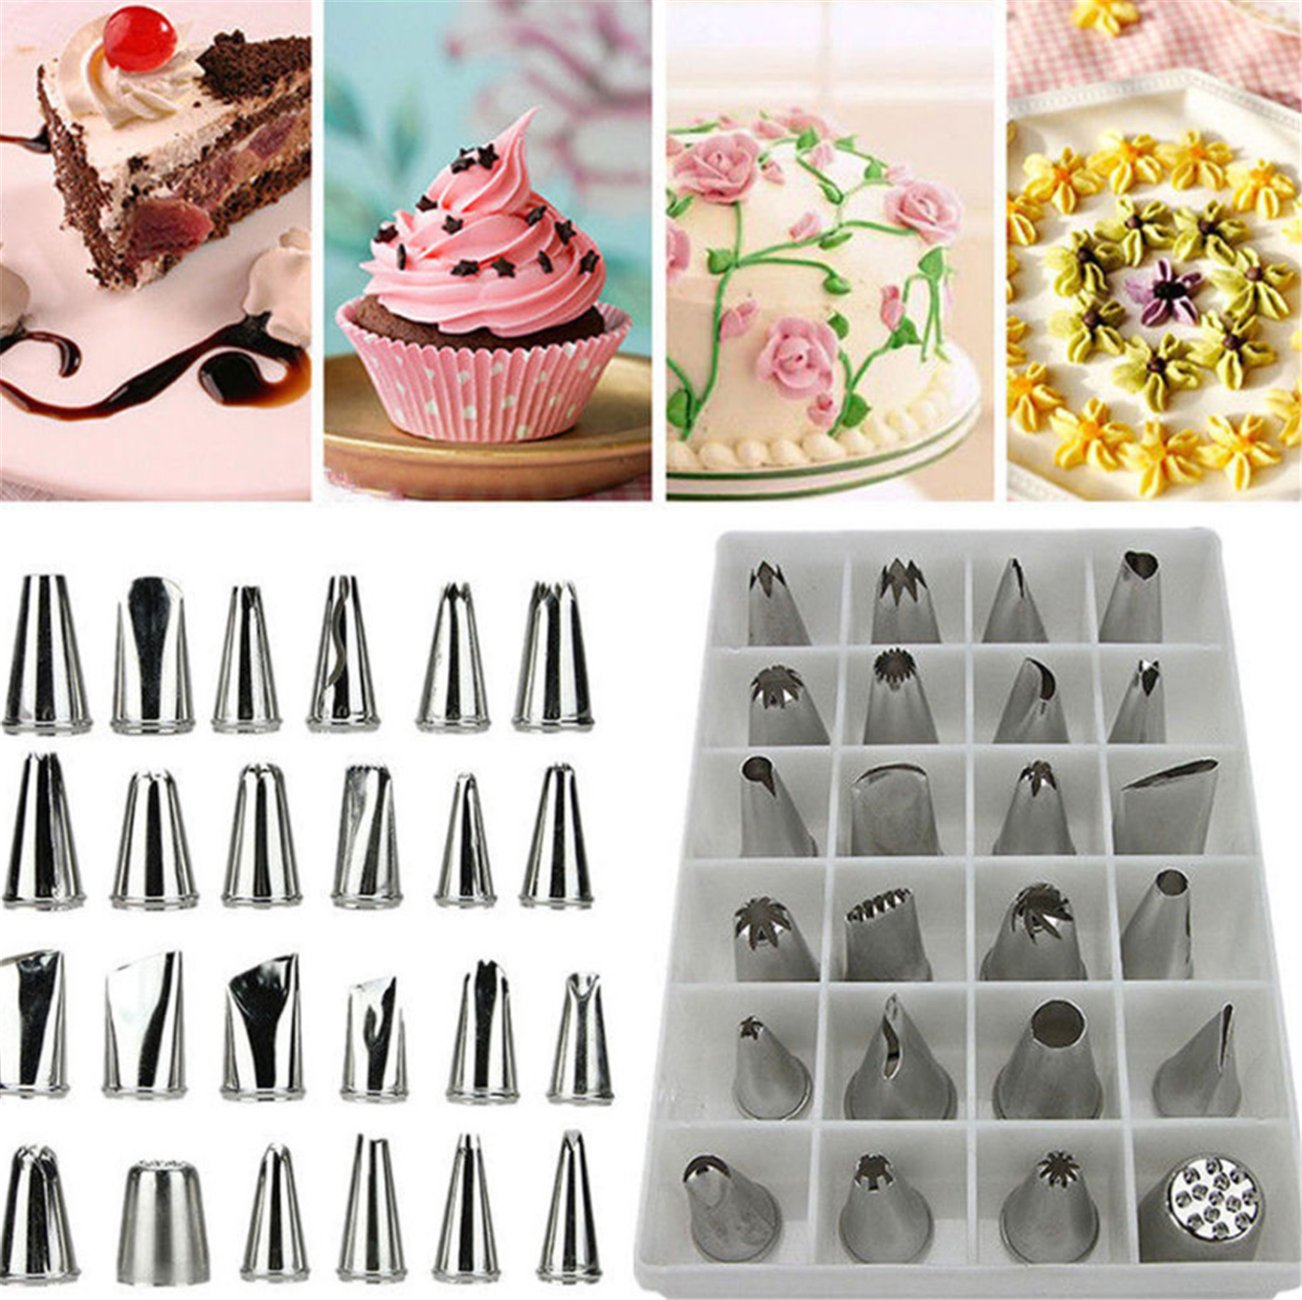 Cake Decorating Supplies 24 PCS Tips Stainless Steel +100 Disposable Bag Decoration Cream Pastry Cake (24 Cake Tips+100pcs Pastry Bag length10.2inch)